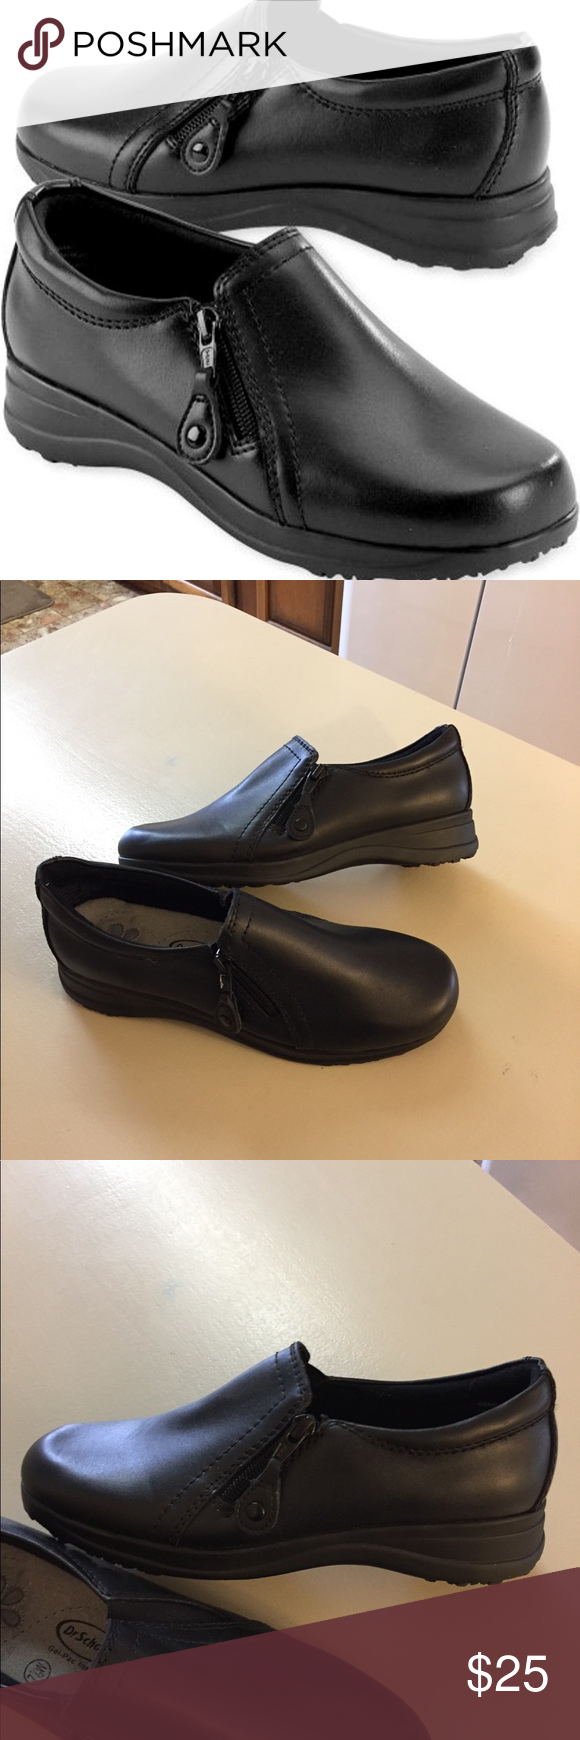 6290faf87dd Dr. Scholl s Marci Gel-Pac Zippered Loafers 7.5W Dr. Scholl s Marco Gel-Pac  Zippered Leather Loafers Pre owned look new Excellent condition Size 7.5W Dr.  ...